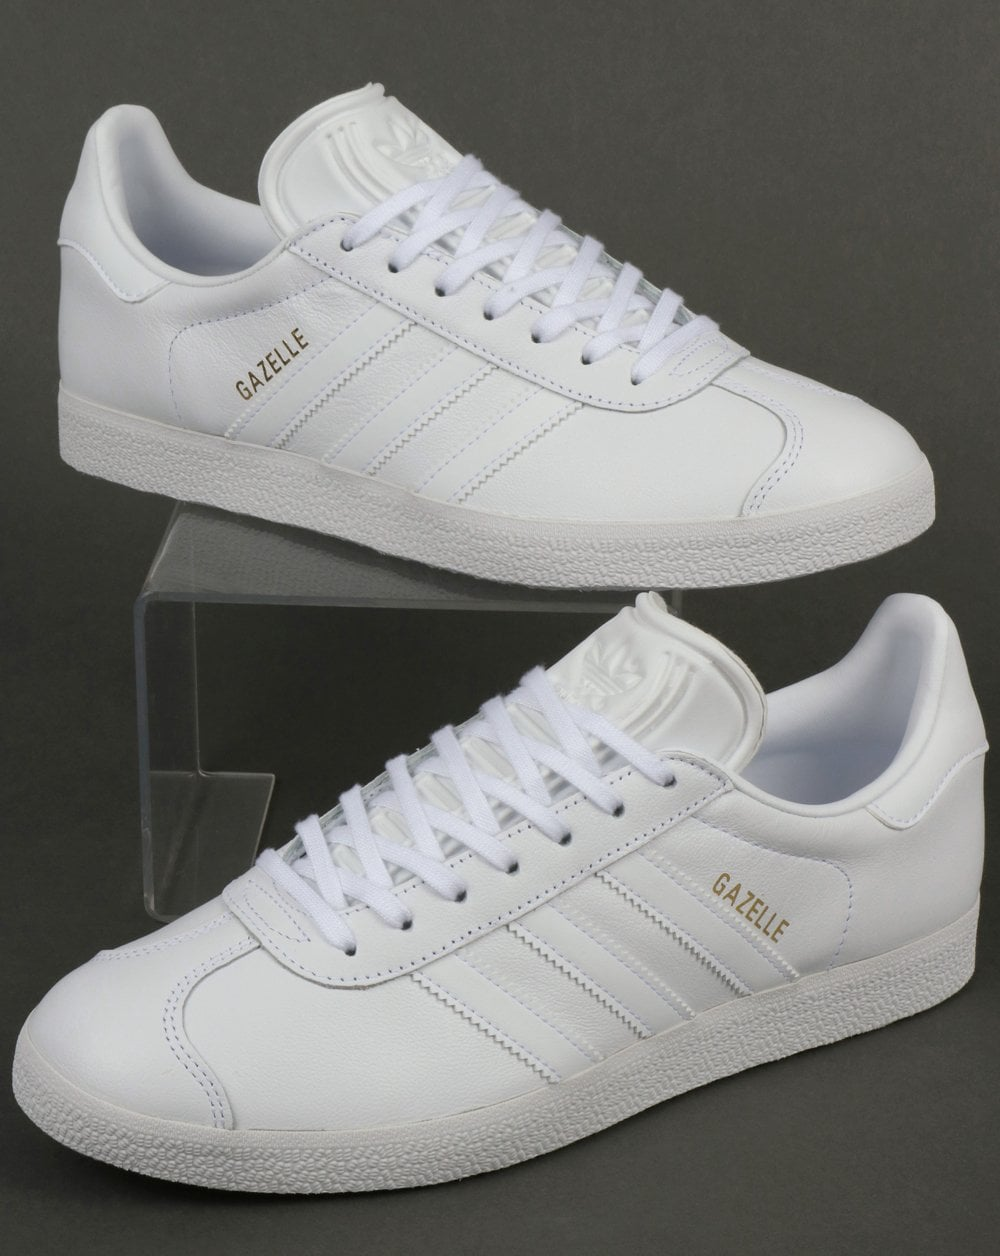 1dacc60d5a44 Adidas Gazelle Leather Trainers in White